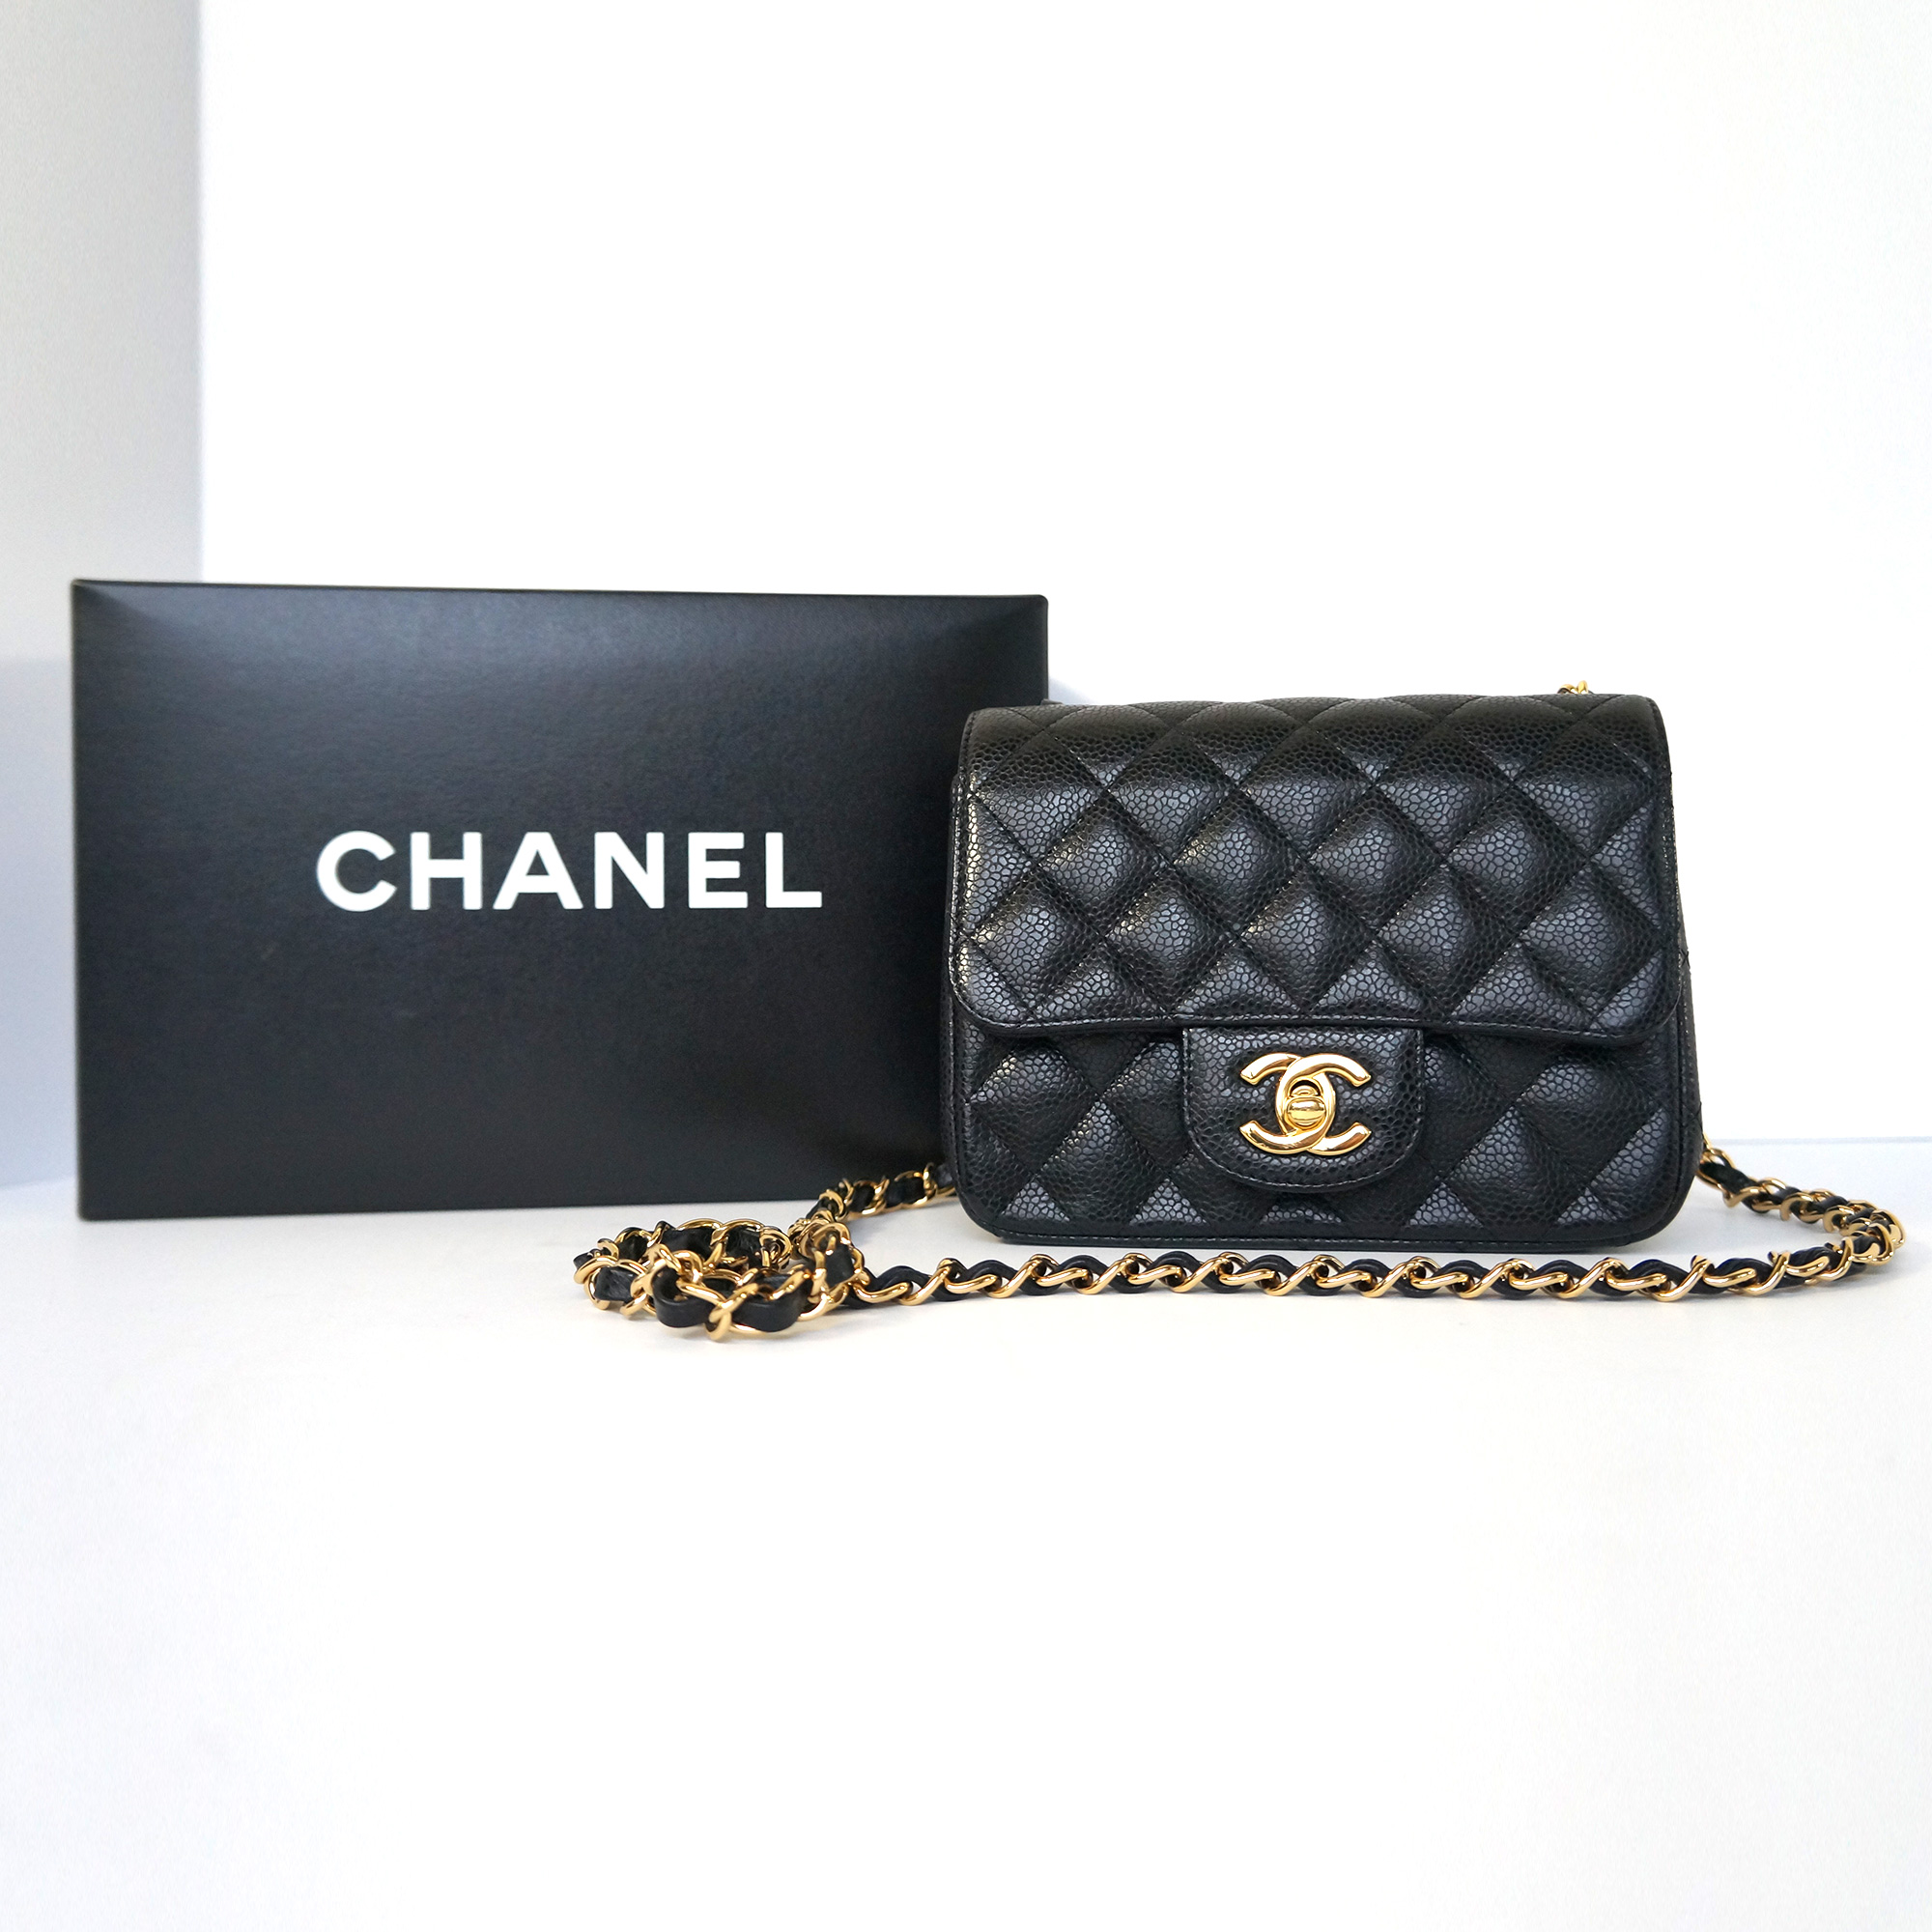 Chanel Classic Square Mini Flap Bag Black Caviar Leather Gold ... f8ee32acc99bc